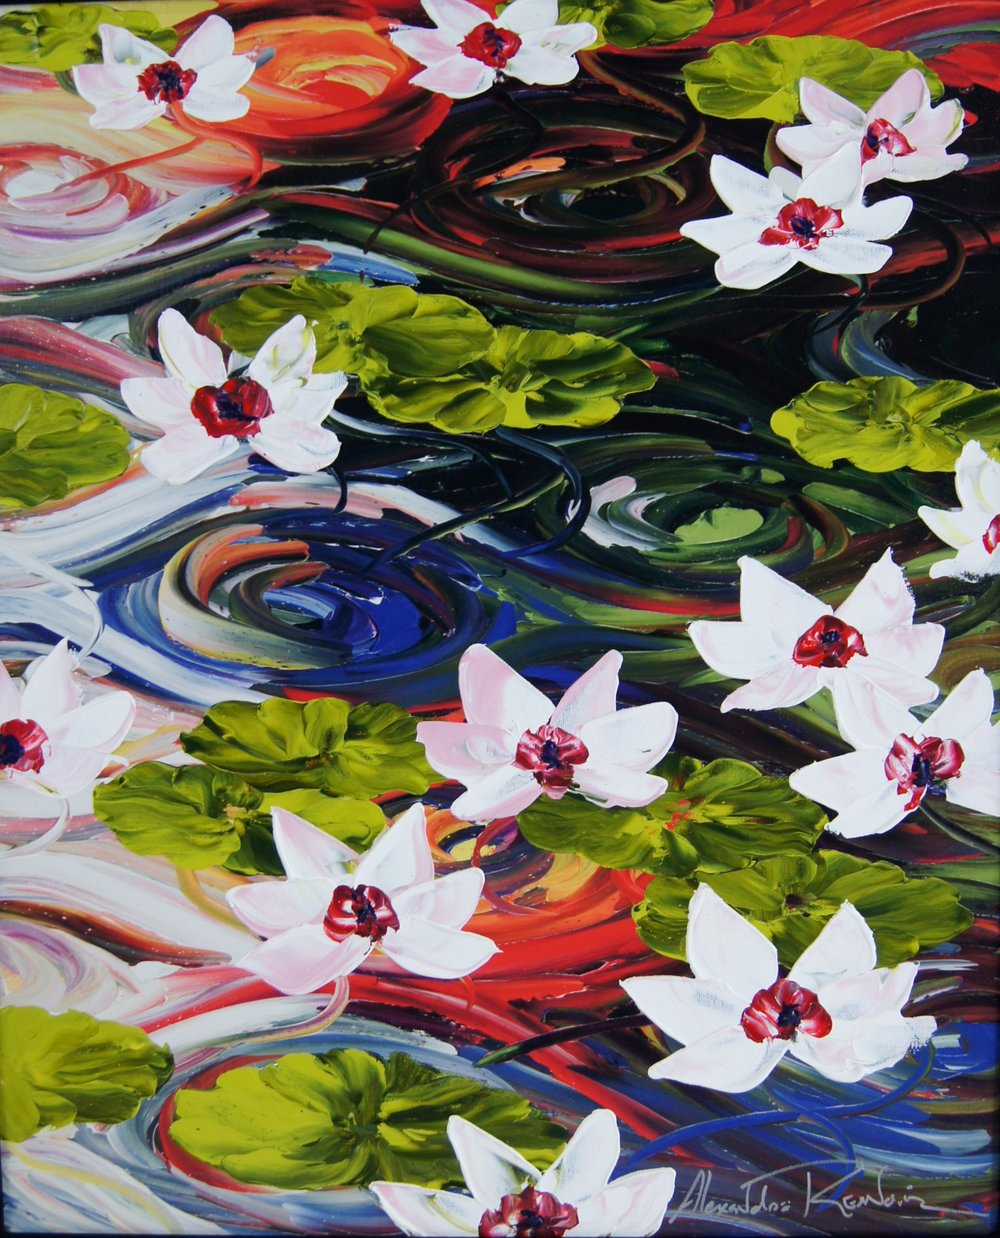 LILLIES IN THE LIGHT - 20 x 24 - $3,450.00    FAB price $1,725.00